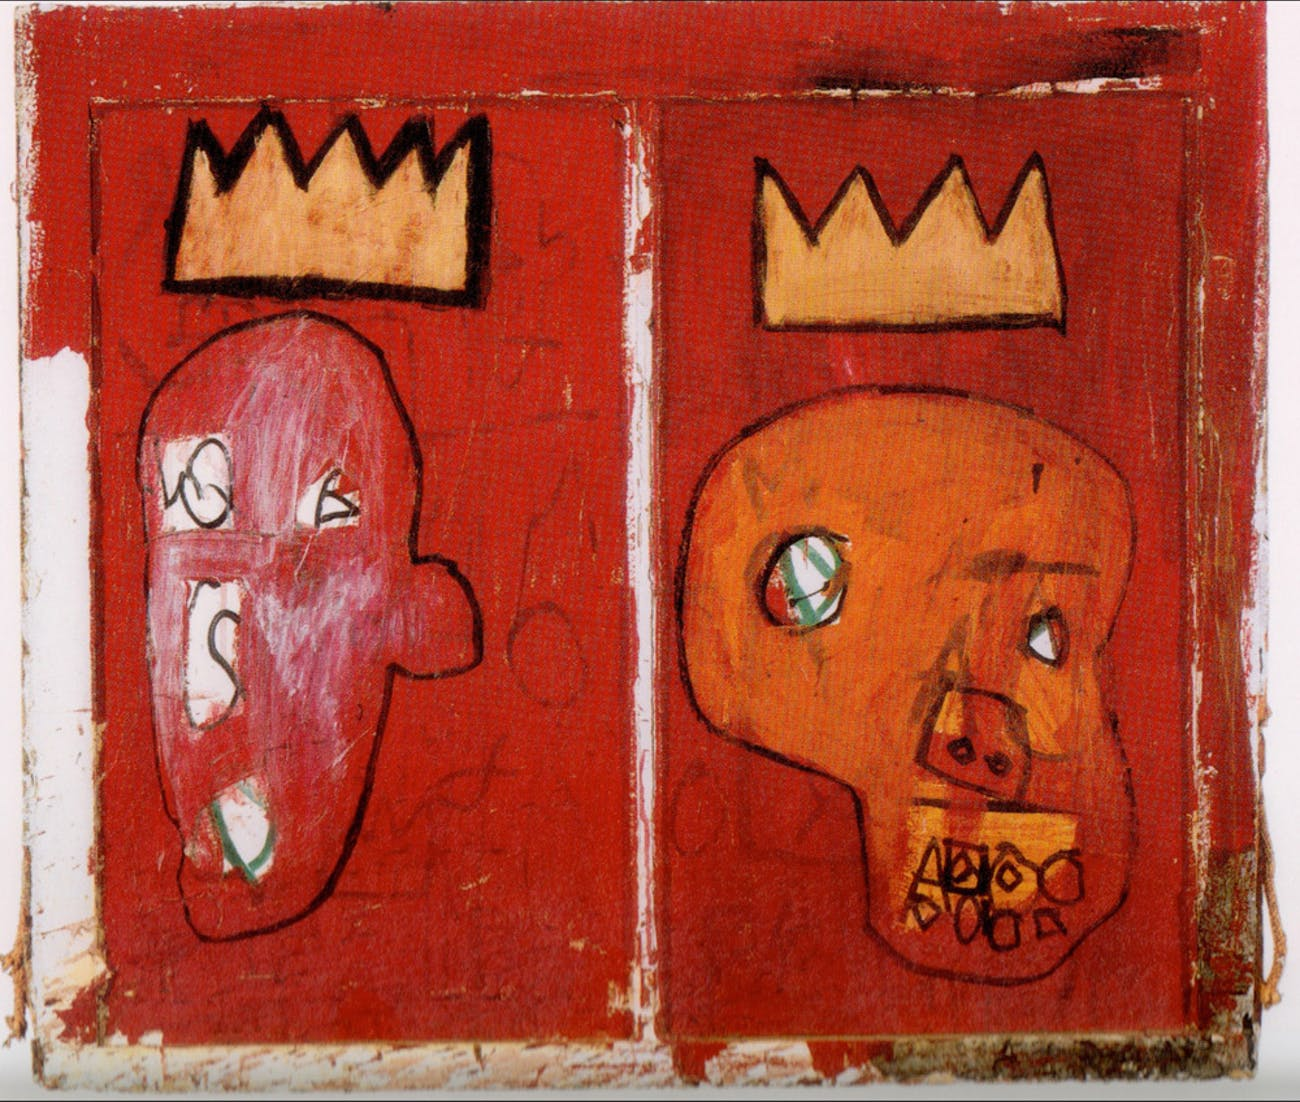 Jean Michel Basquiat's 'Two Kings', Black Mariah's painting of choice.